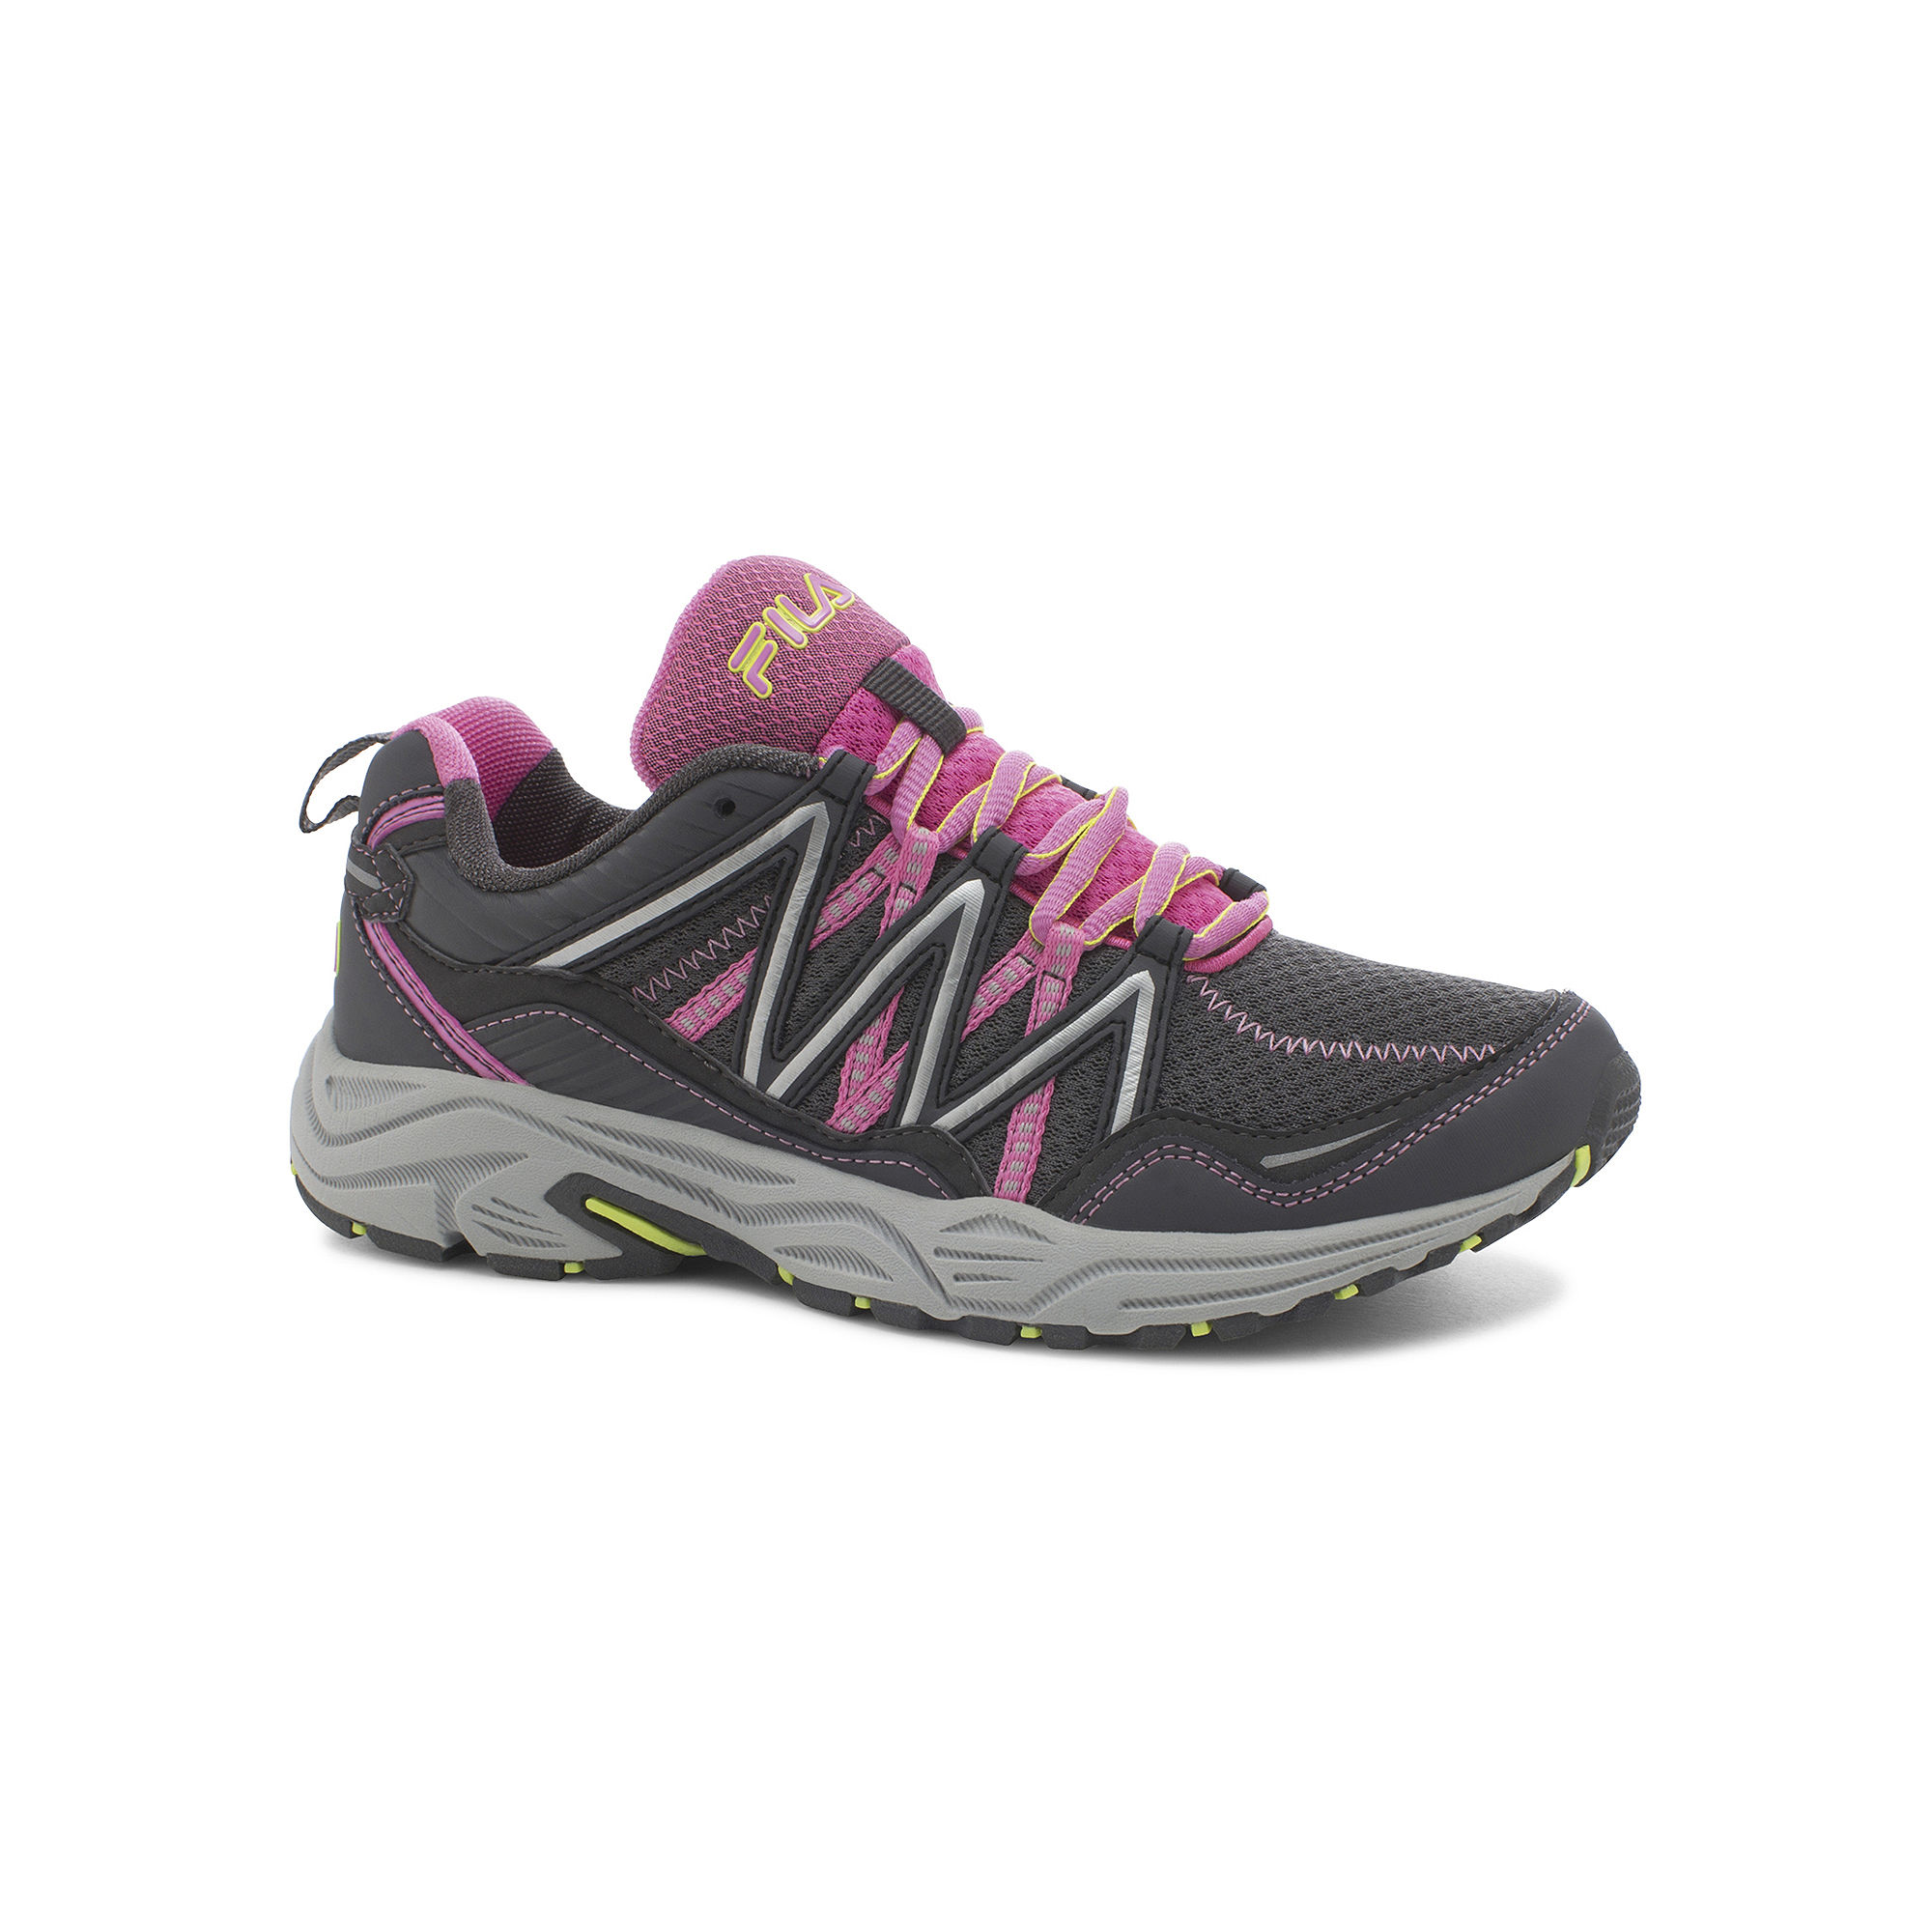 Fila Headway 6 Women's Running Shoes